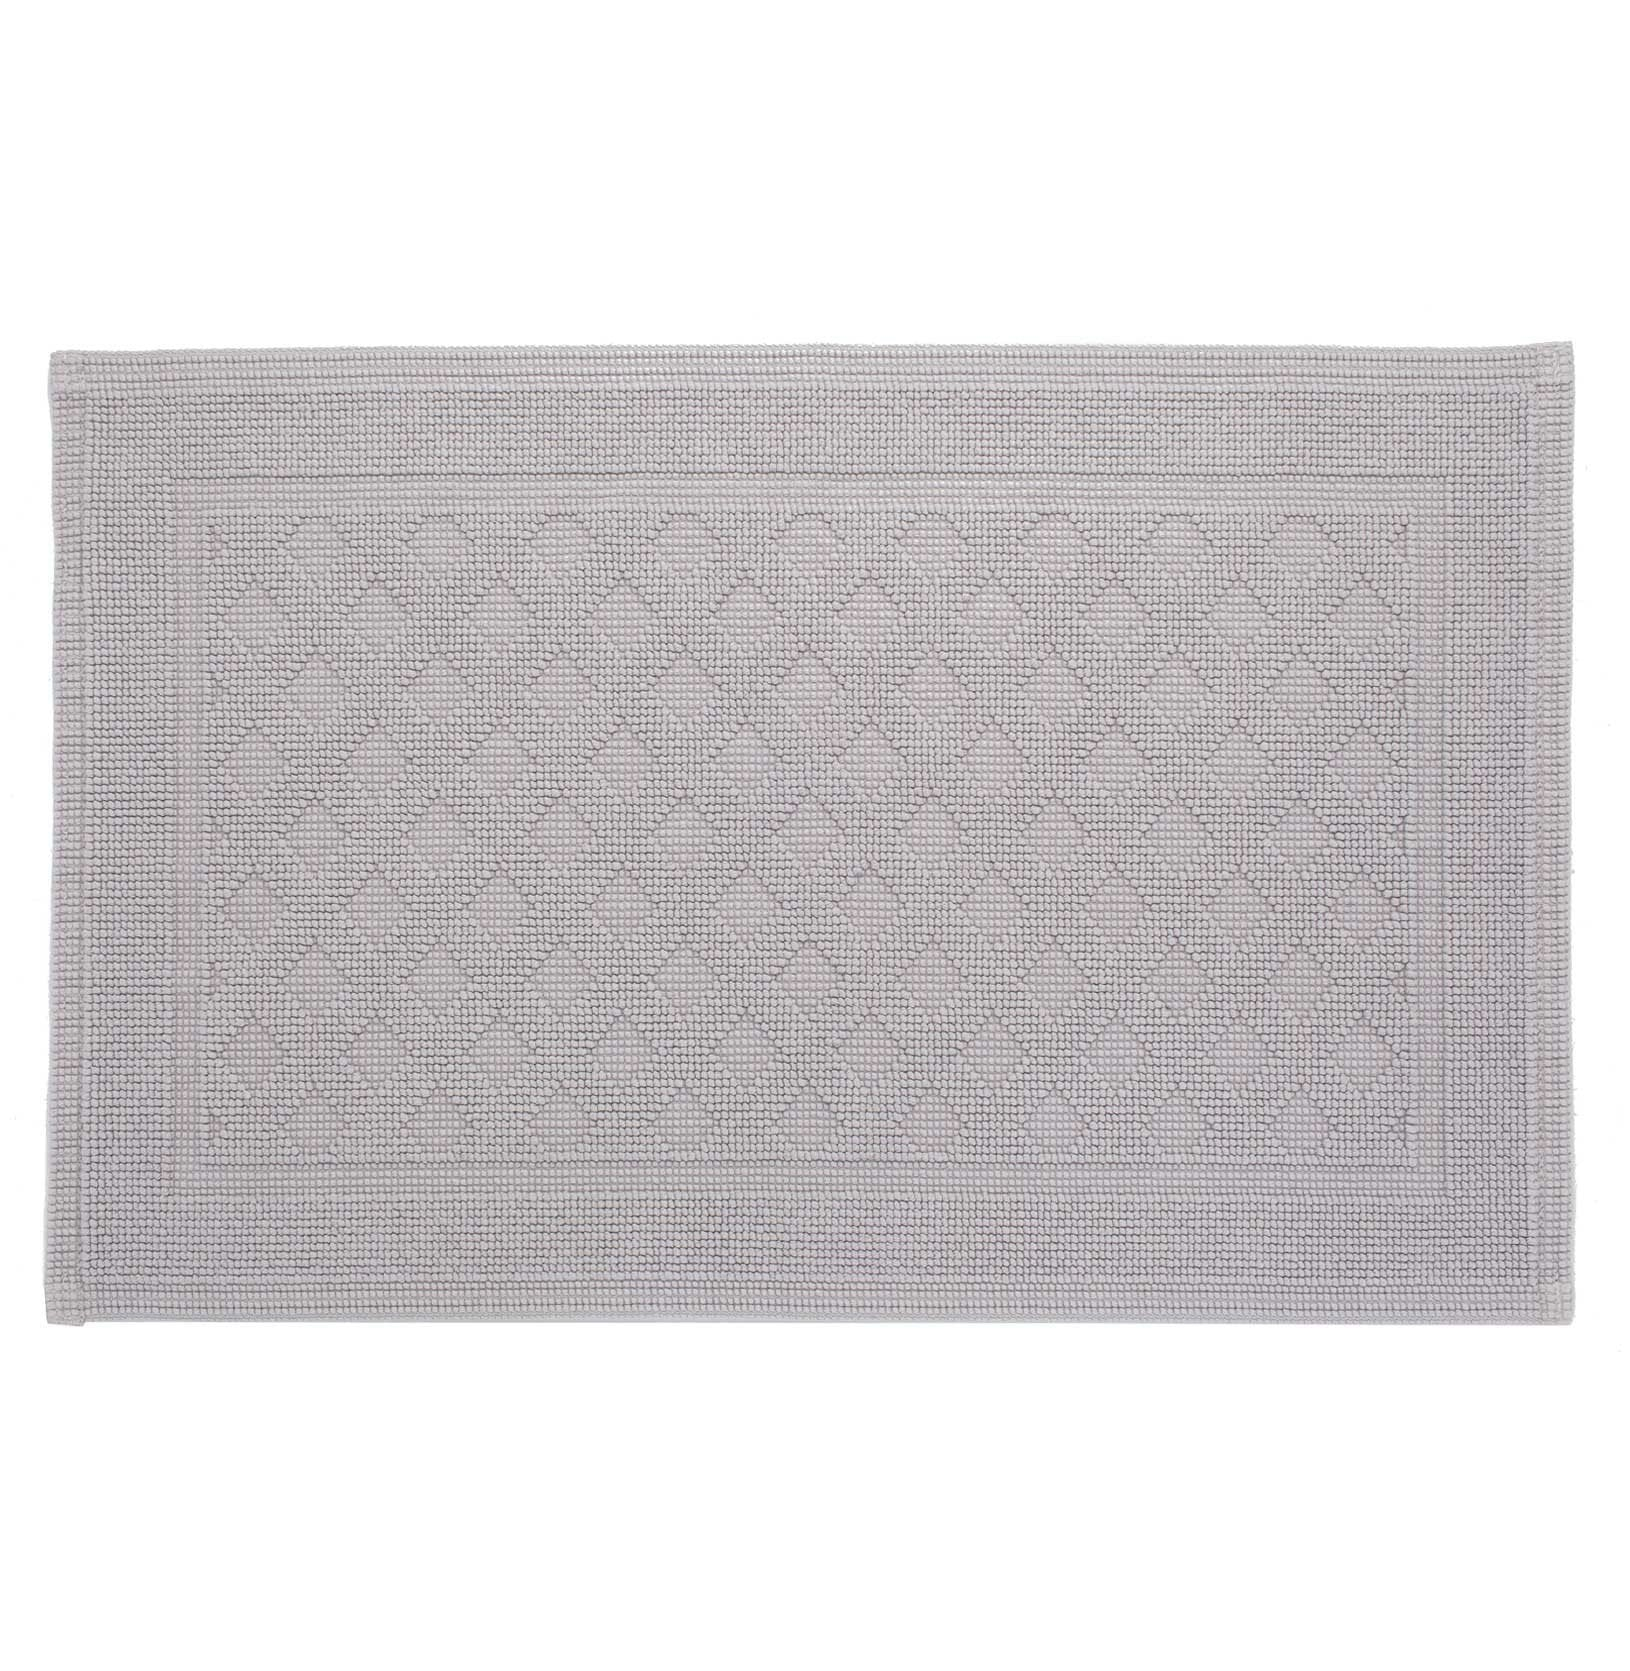 Osuna bath mat, light grey, 100% cotton